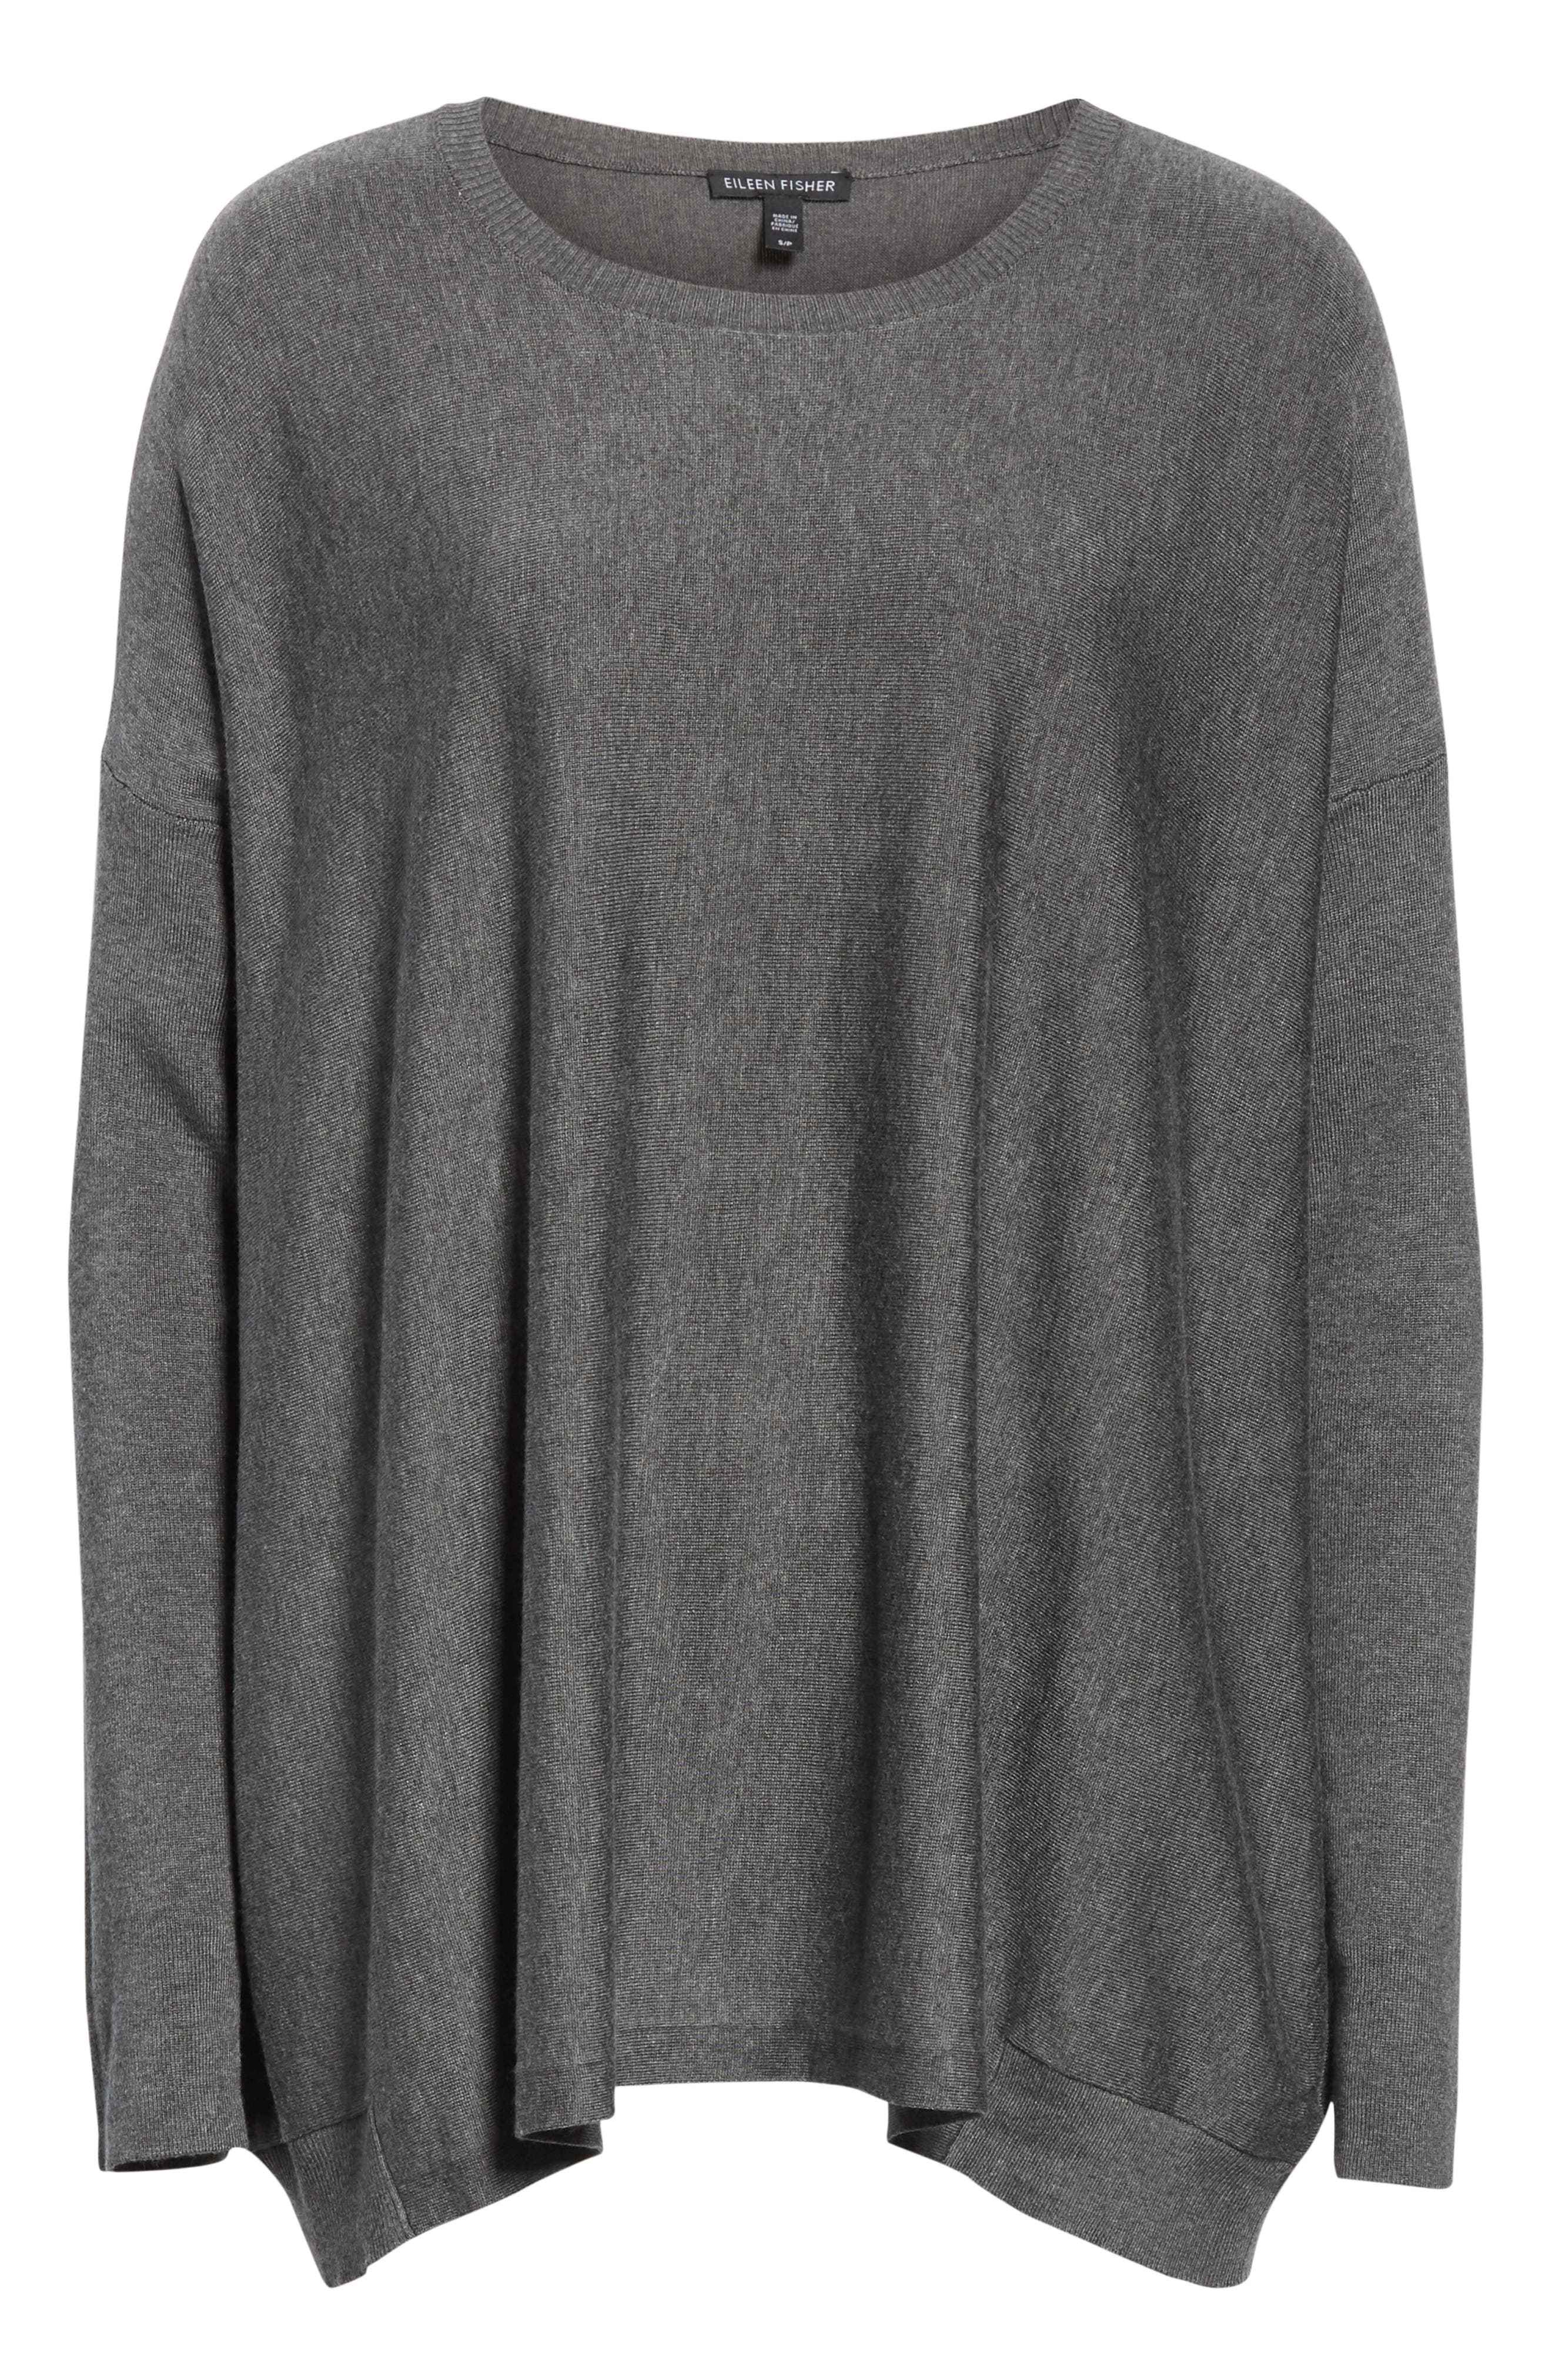 EILEEN FISHER, Tencel<sup>®</sup> Lyocell Blend Sweater, Alternate thumbnail 6, color, 030